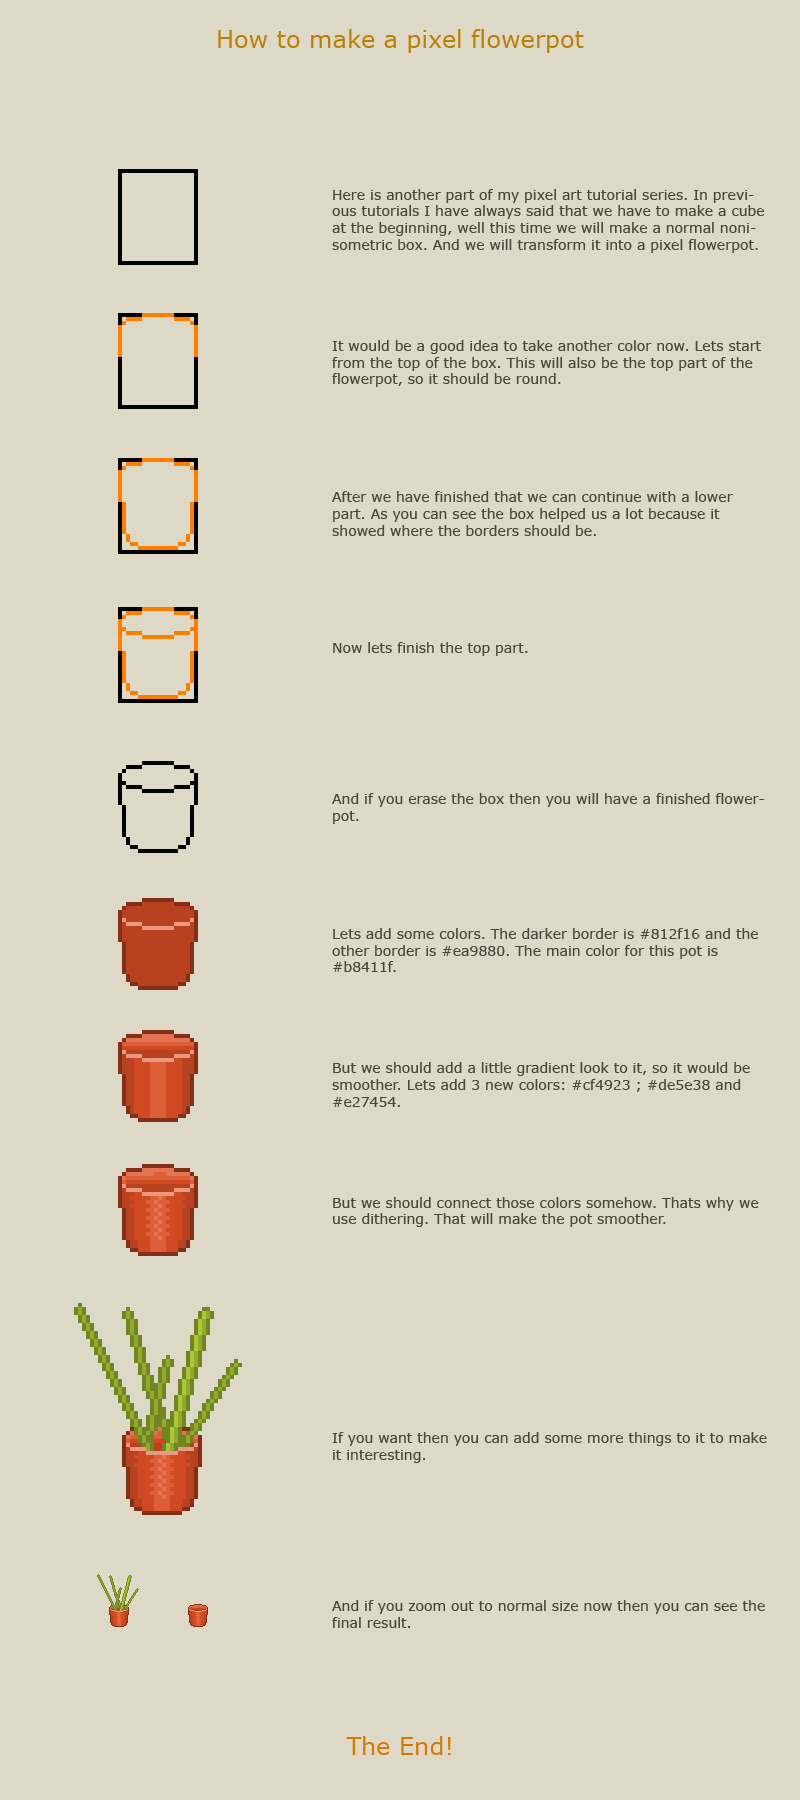 How to make a pixel flowerpot by vanmall